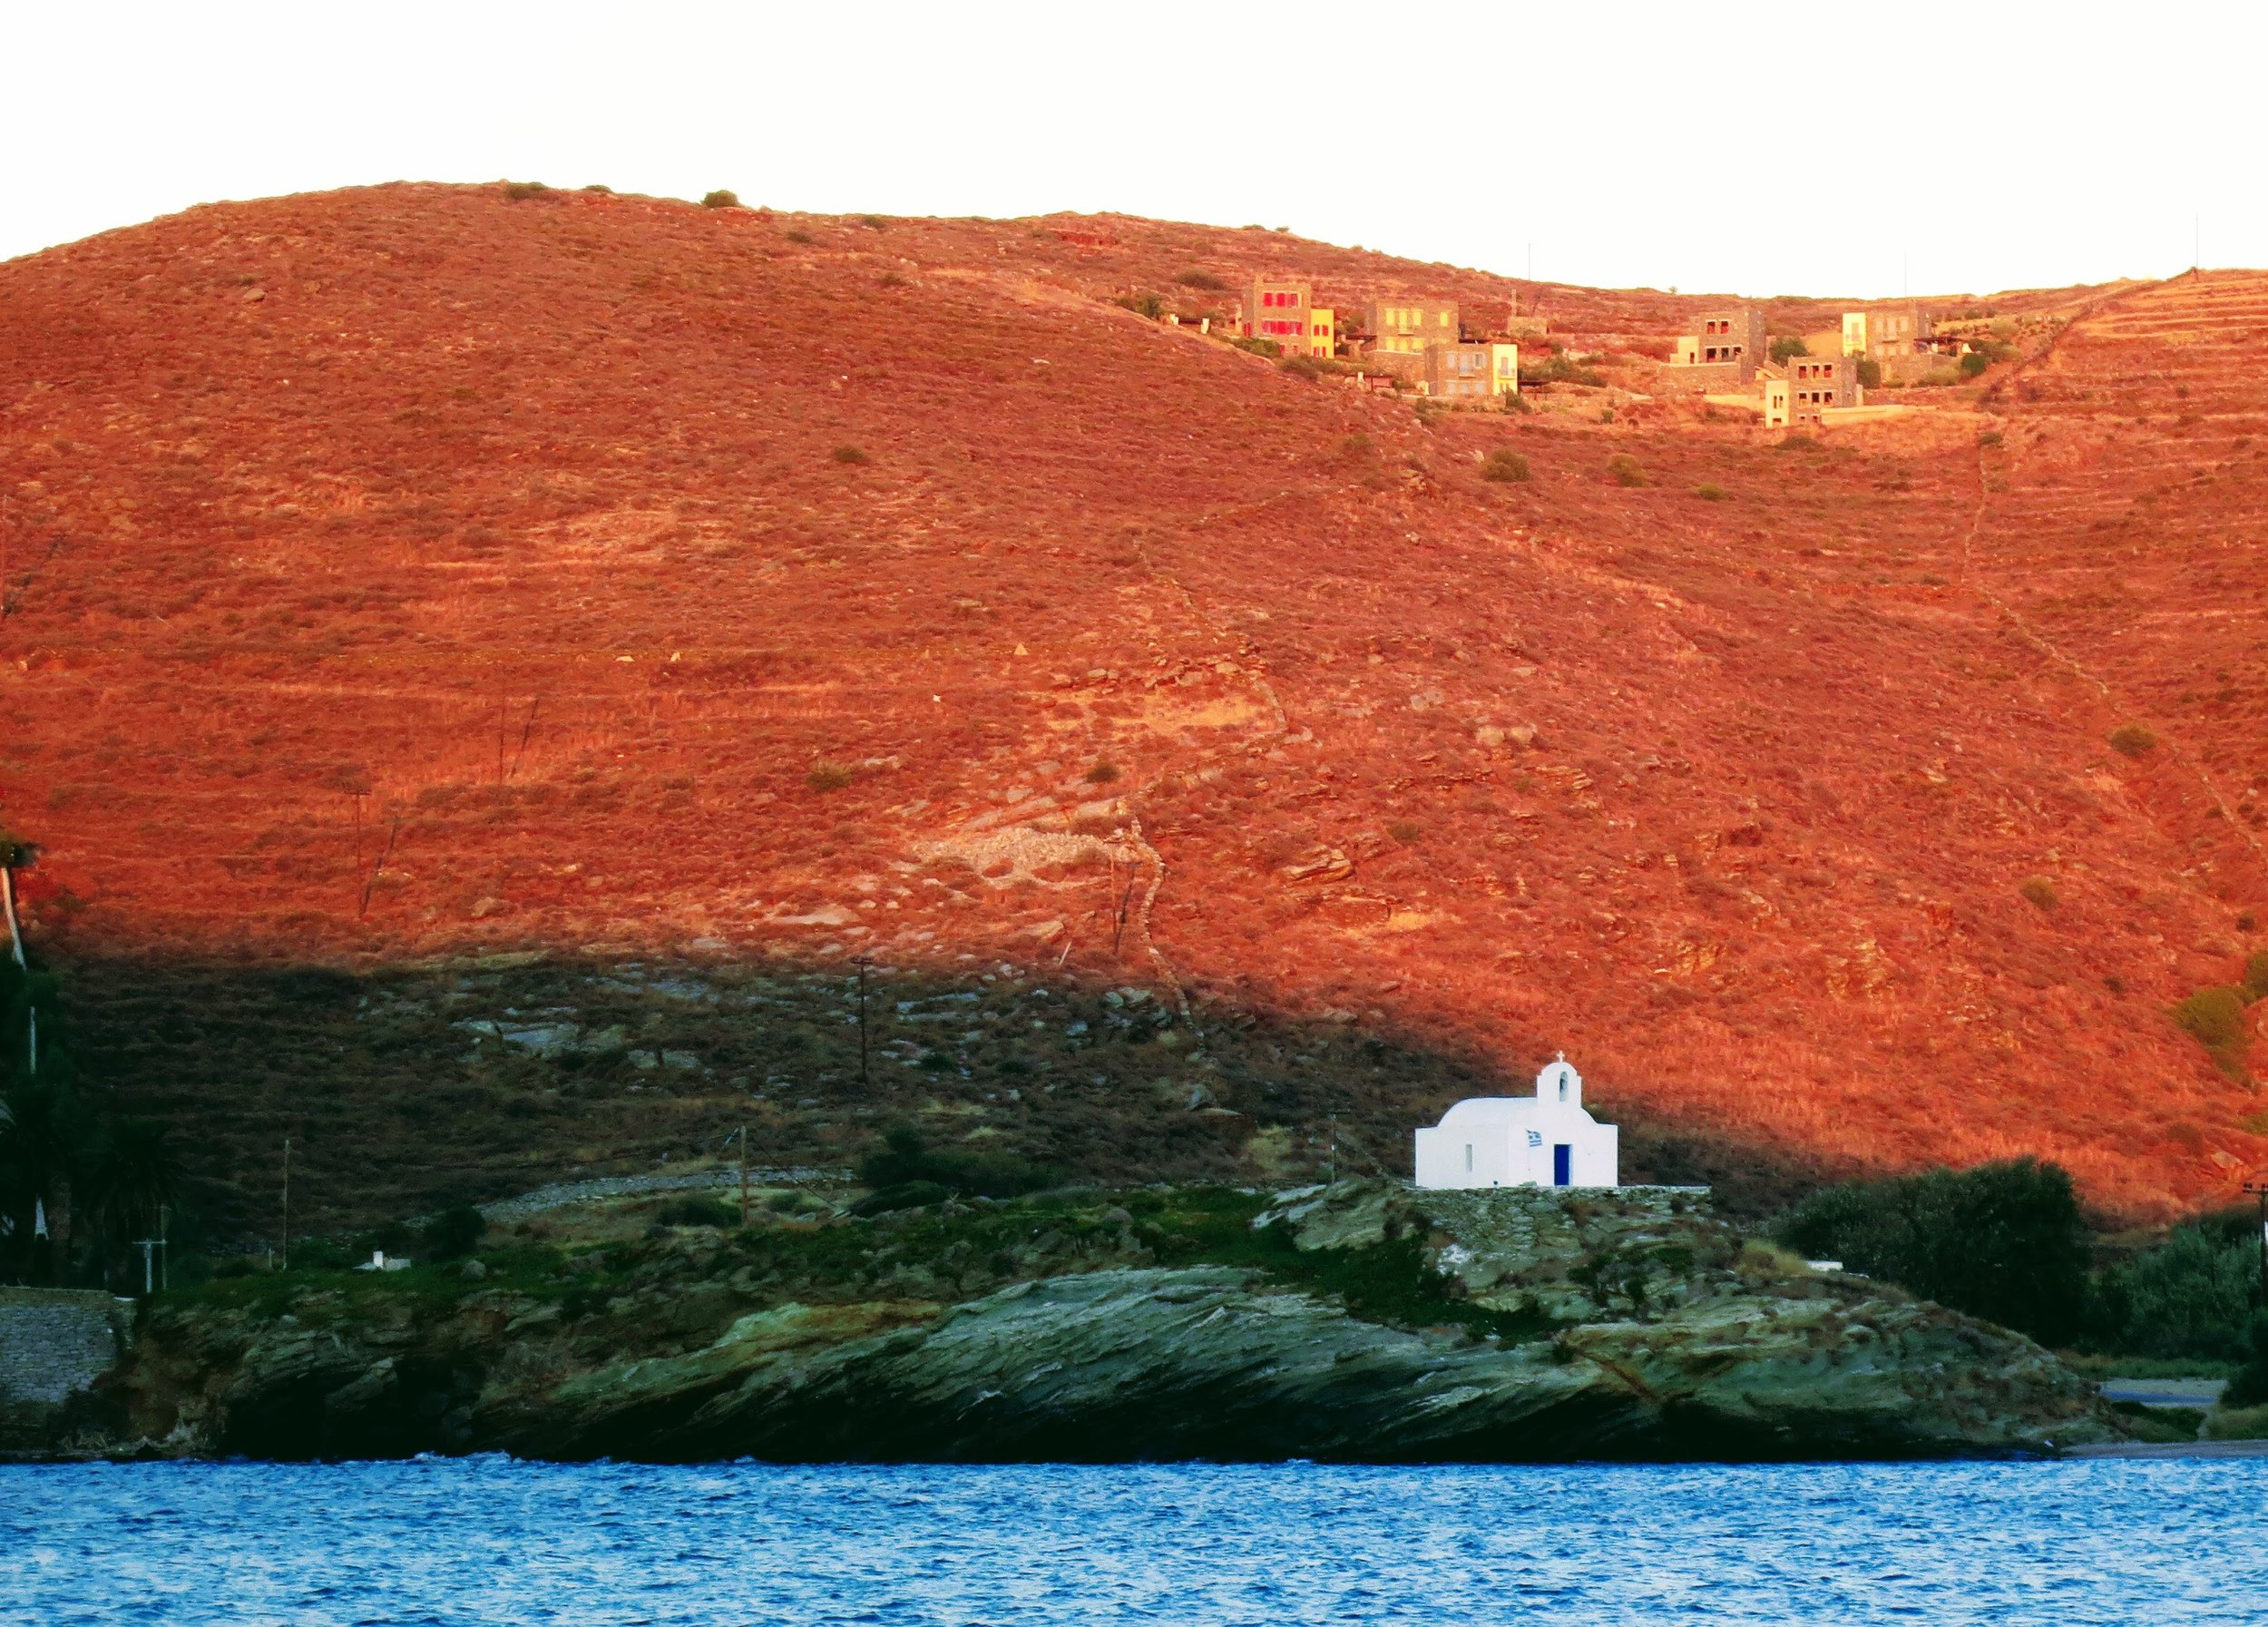 The Island of Kea, in the Cyclades, 2012 & 2013